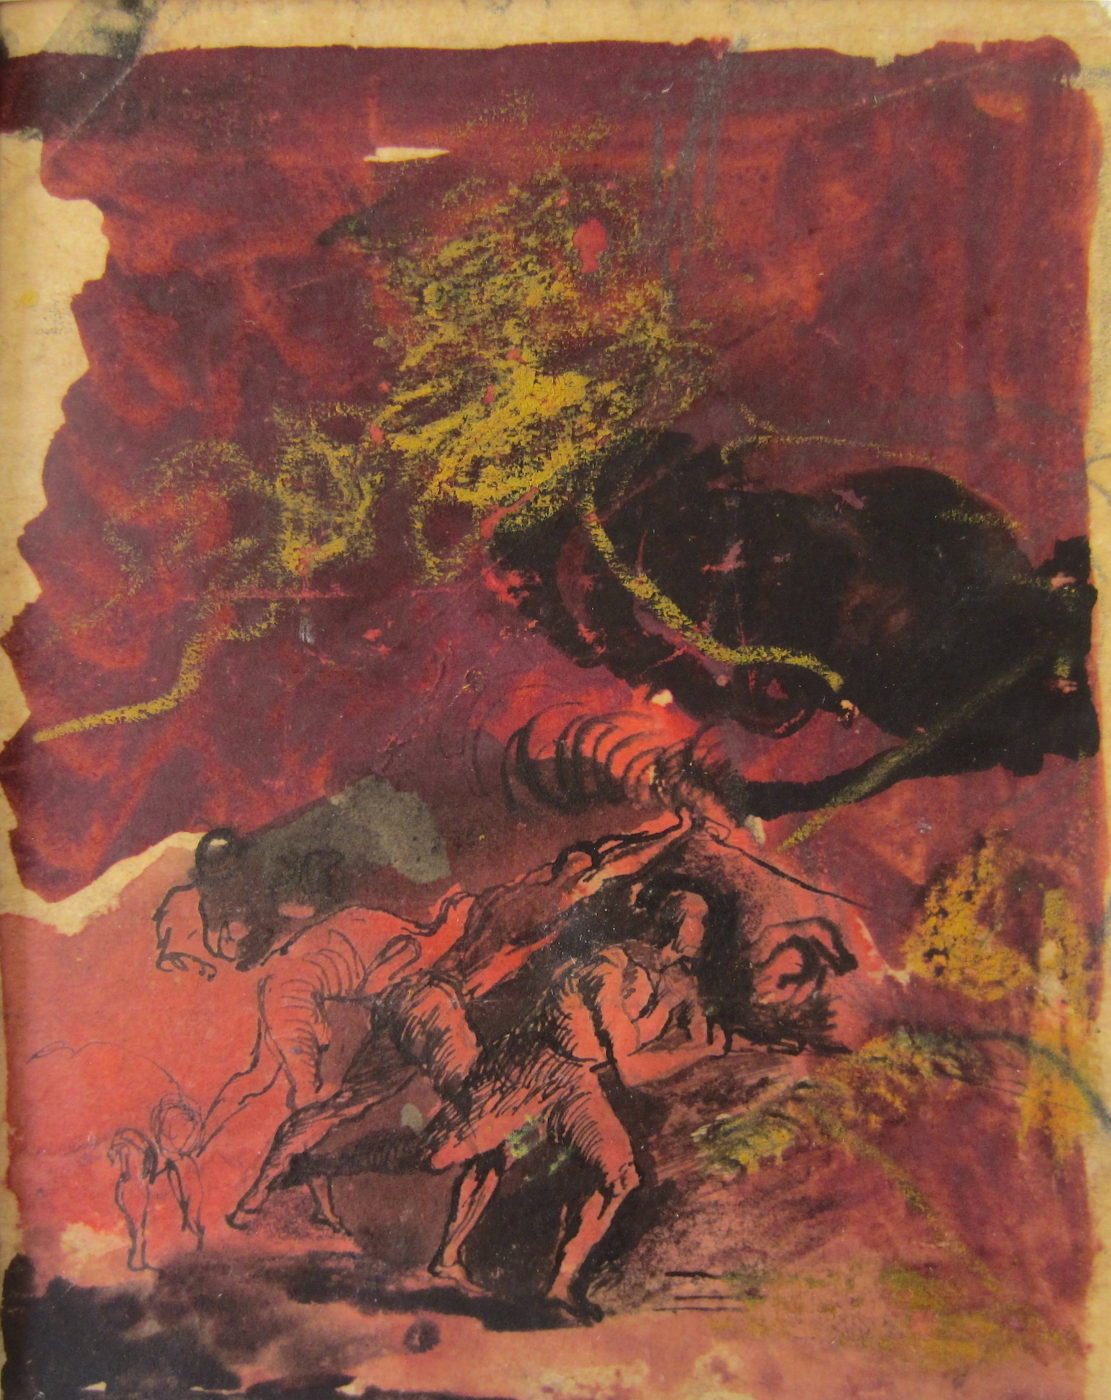 Graham Sutherland, OM (1903-1980), Tapping a steel furnace, Swansea